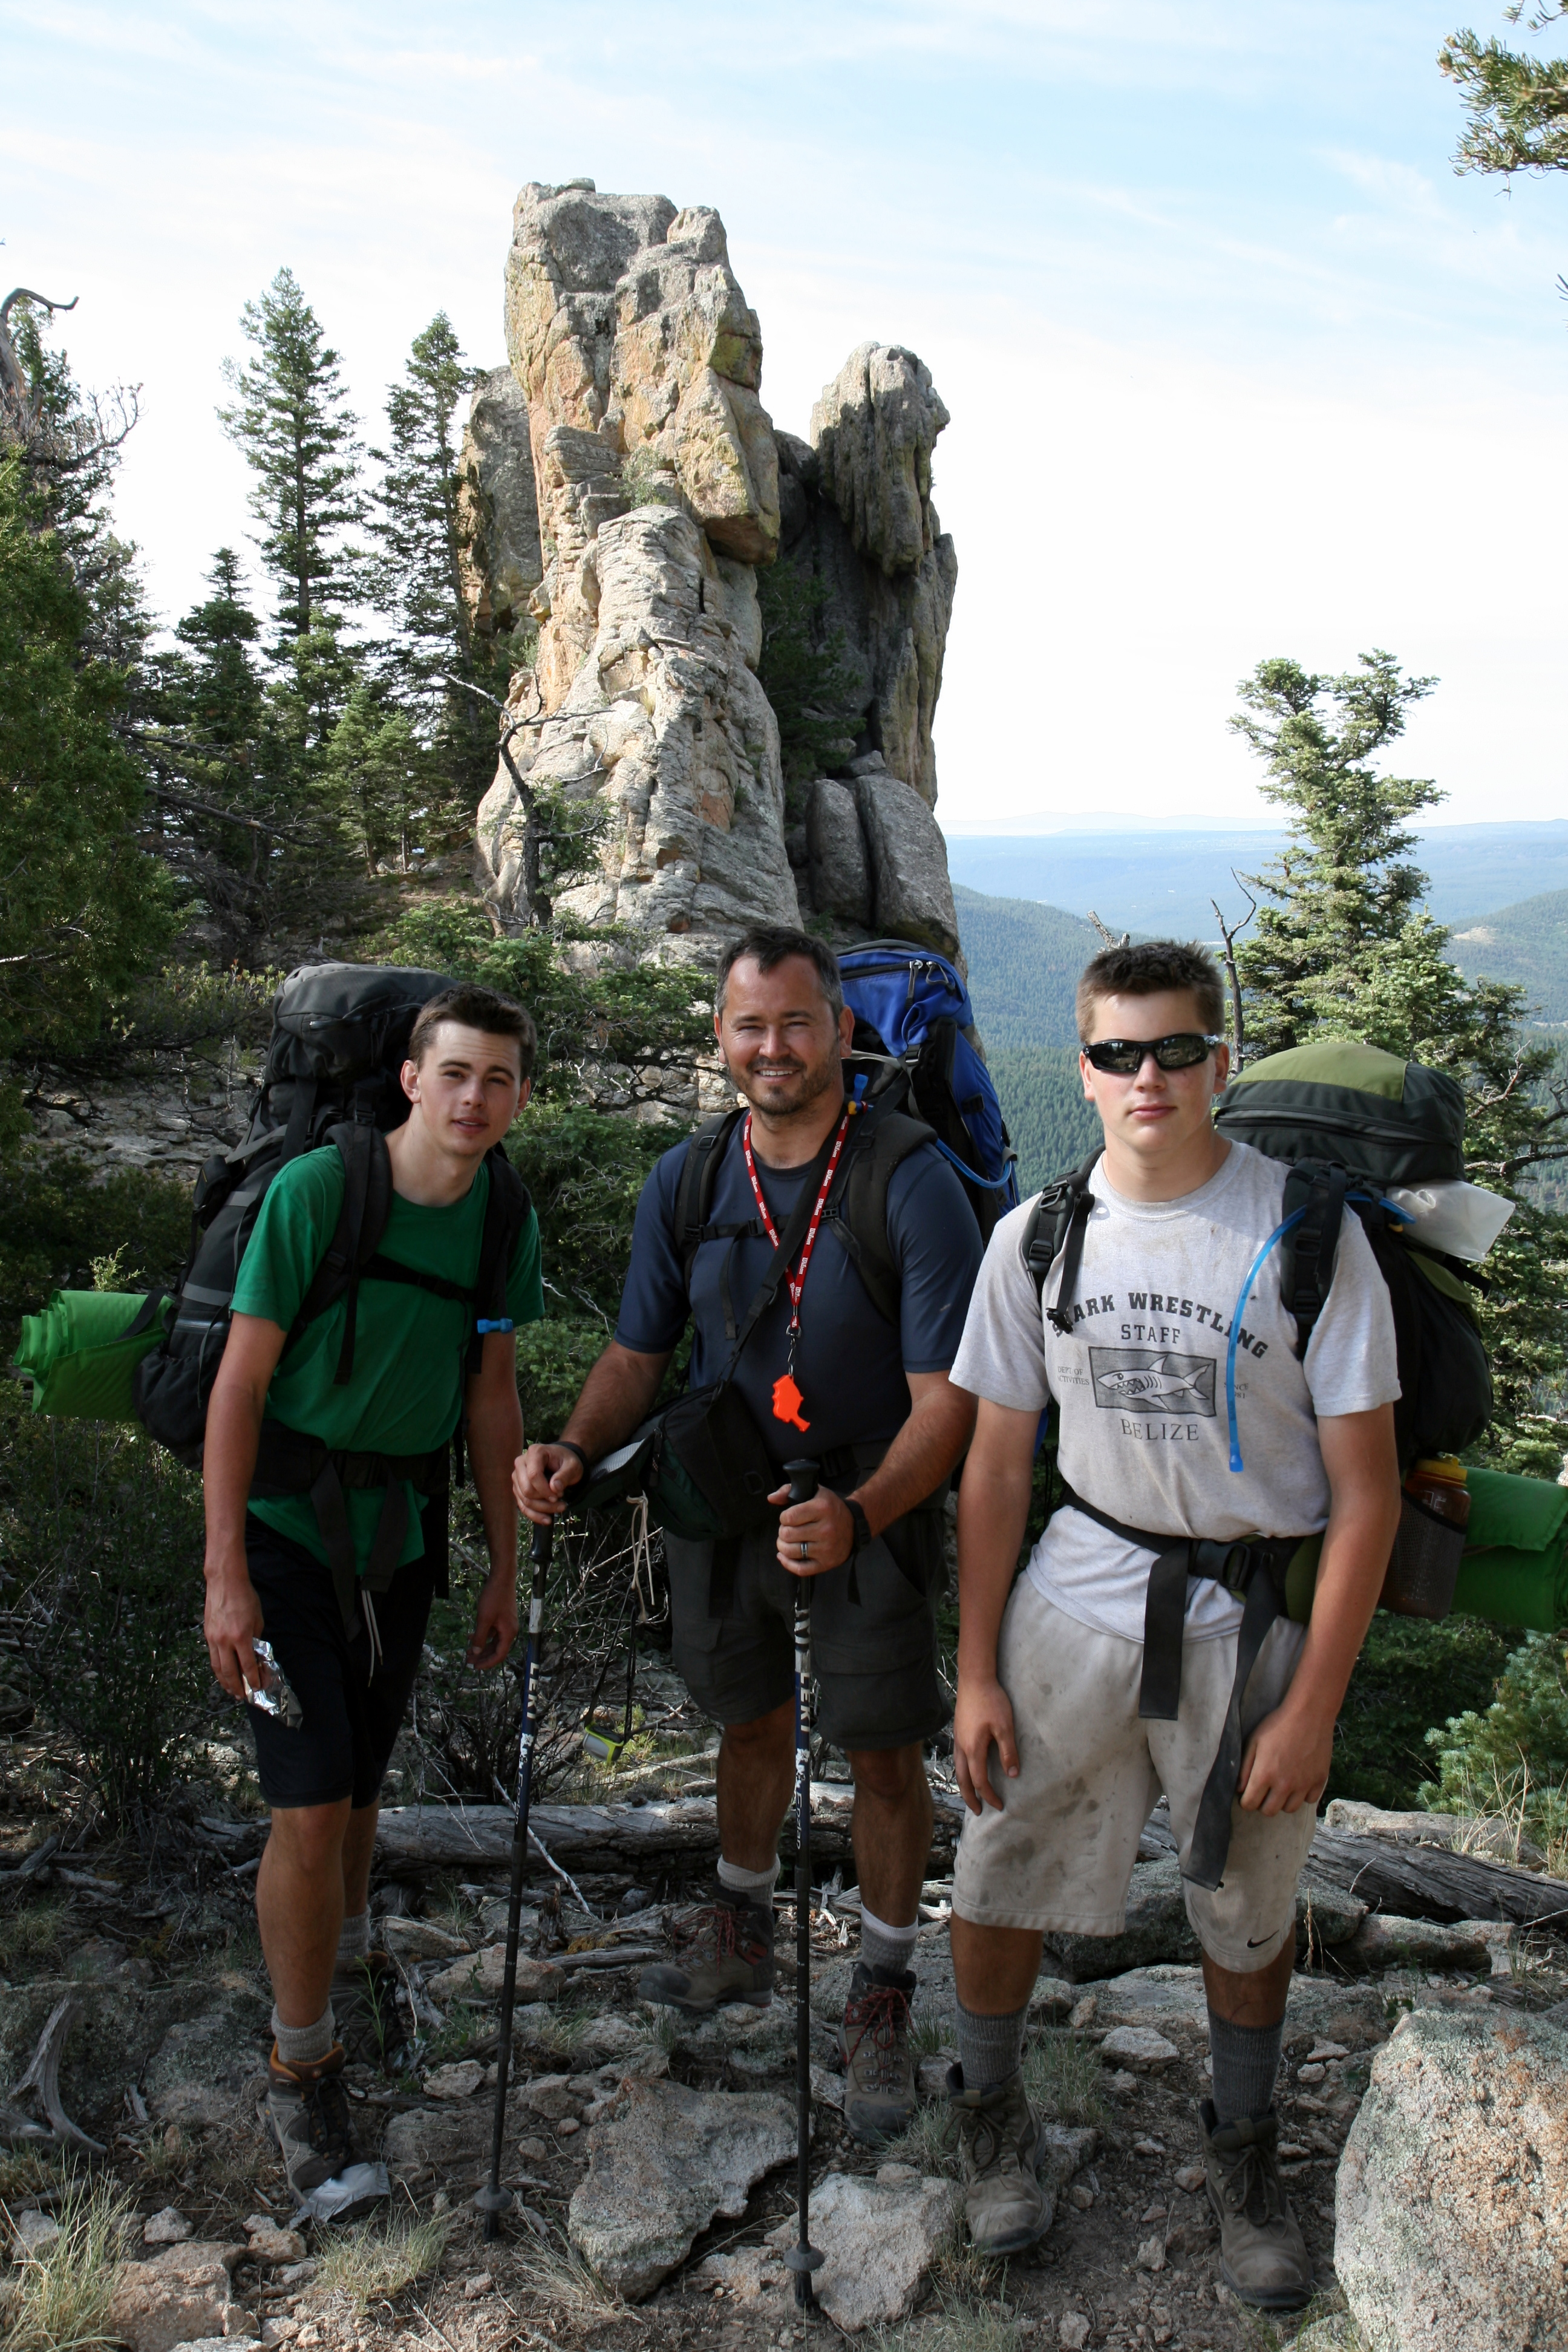 3 Eagle Scouts at Philmont - Skye, Smoke & Cameron Wallin